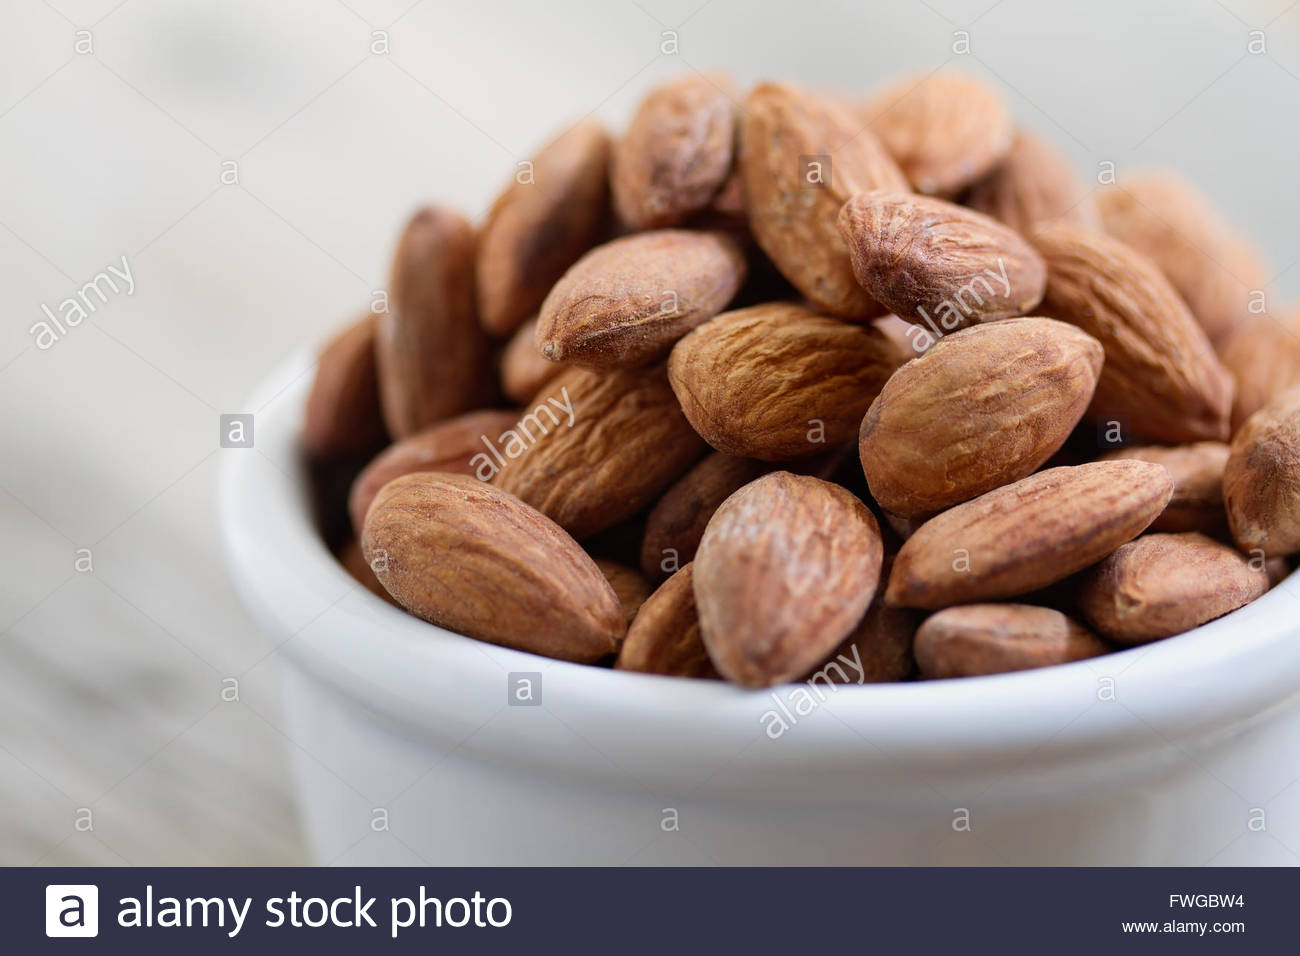 Bowl of almond nuts on rustic wooden table in natural light. - Stock Image